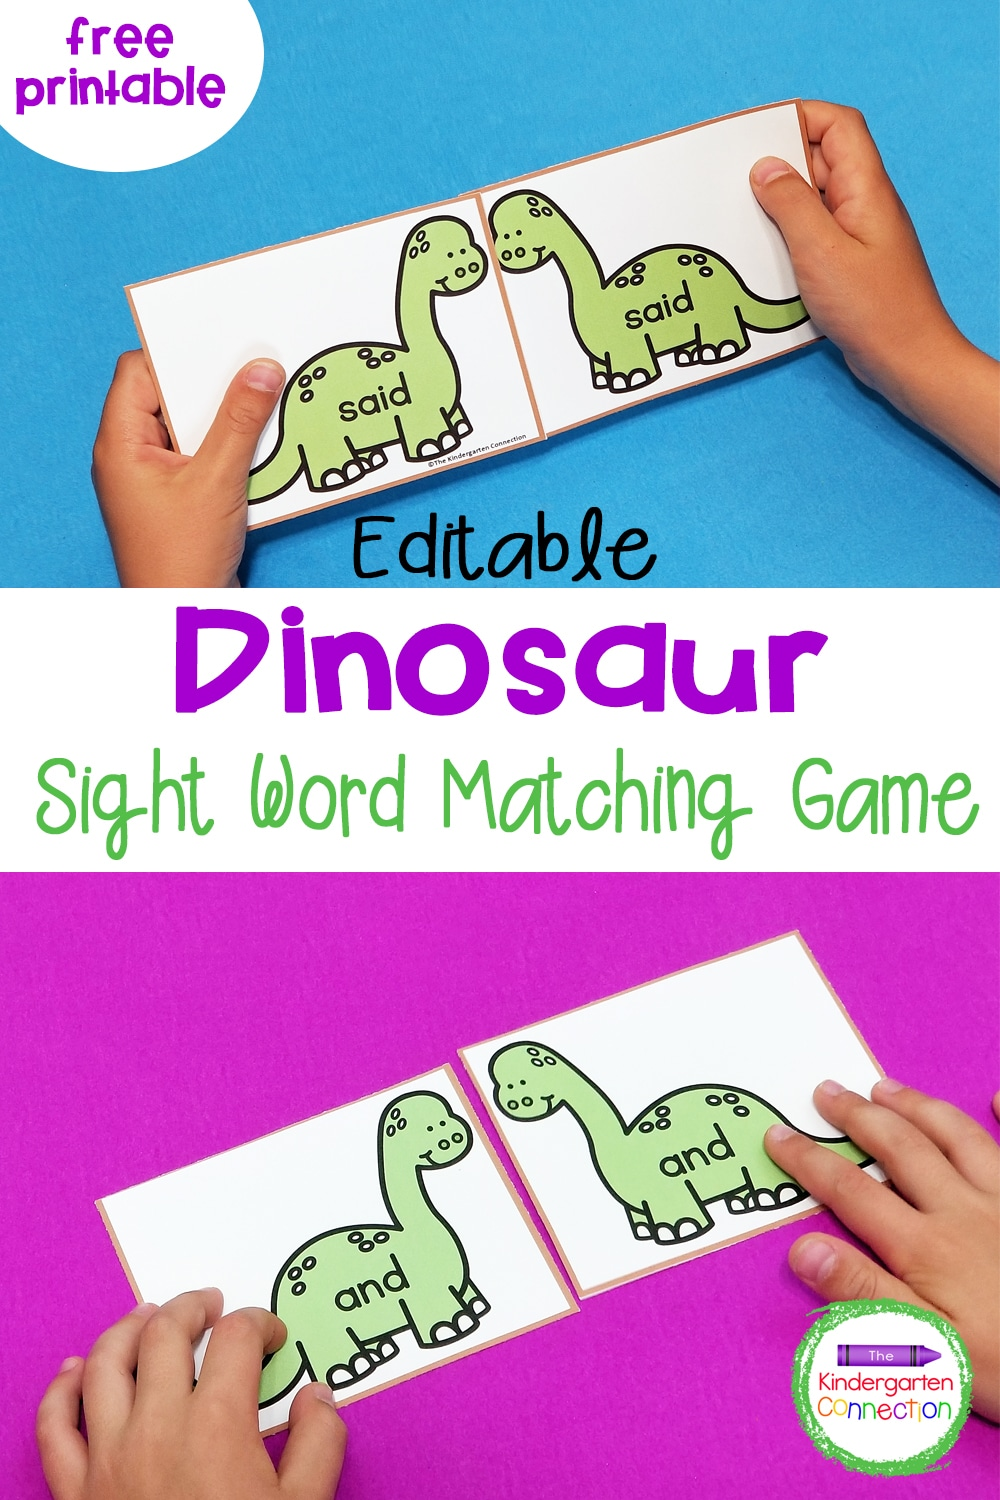 This free and editable Dinosaur Sight Word Game for Kindergarten is so fun and can be customized for any word list!